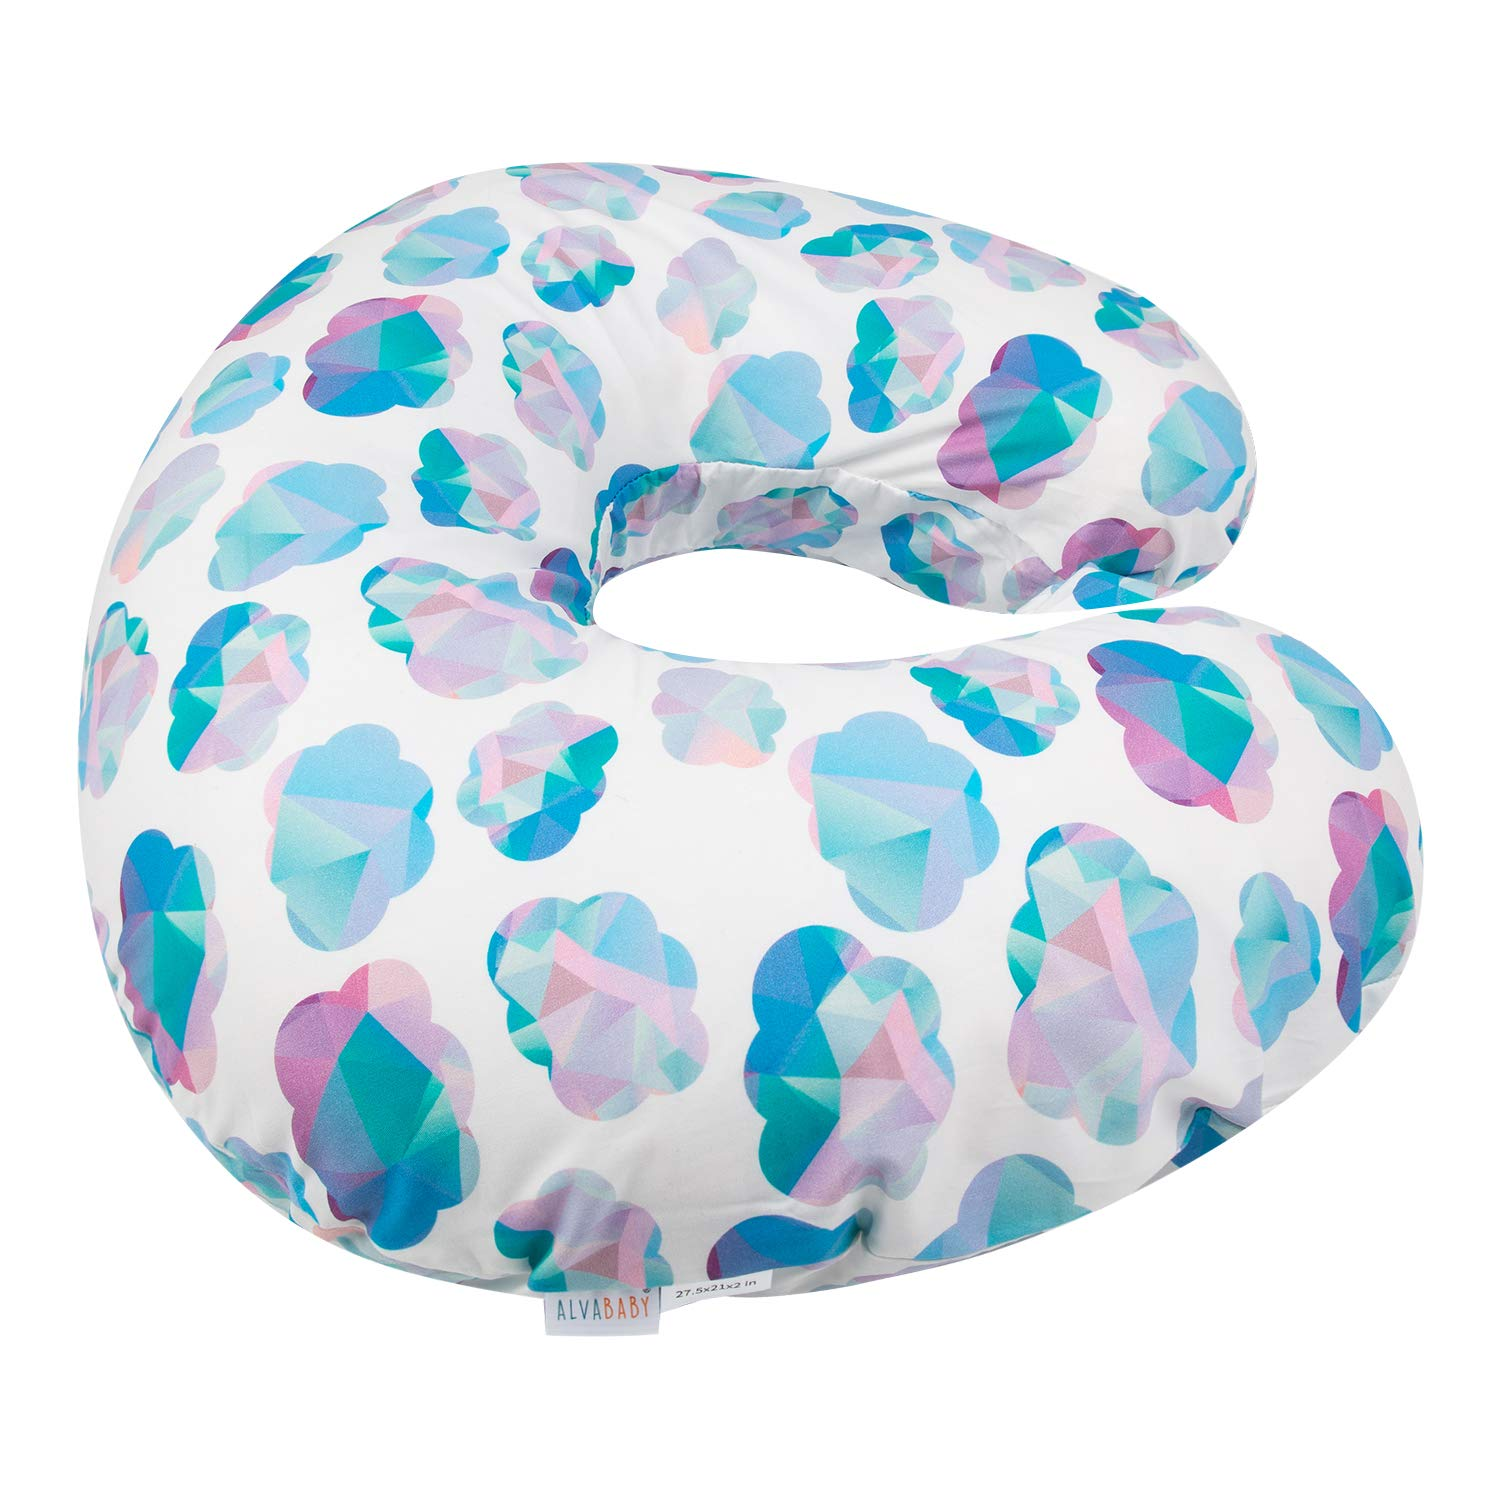 ALVABABY Nursing Pillow Cover Slipcover,100/% Organic Cotton,Soft and Comfortable,Feathers Design,Maternity Breastfeeding Newborn Infant Feeding Cushion Cover,Baby Shower Gift ZT-Z25